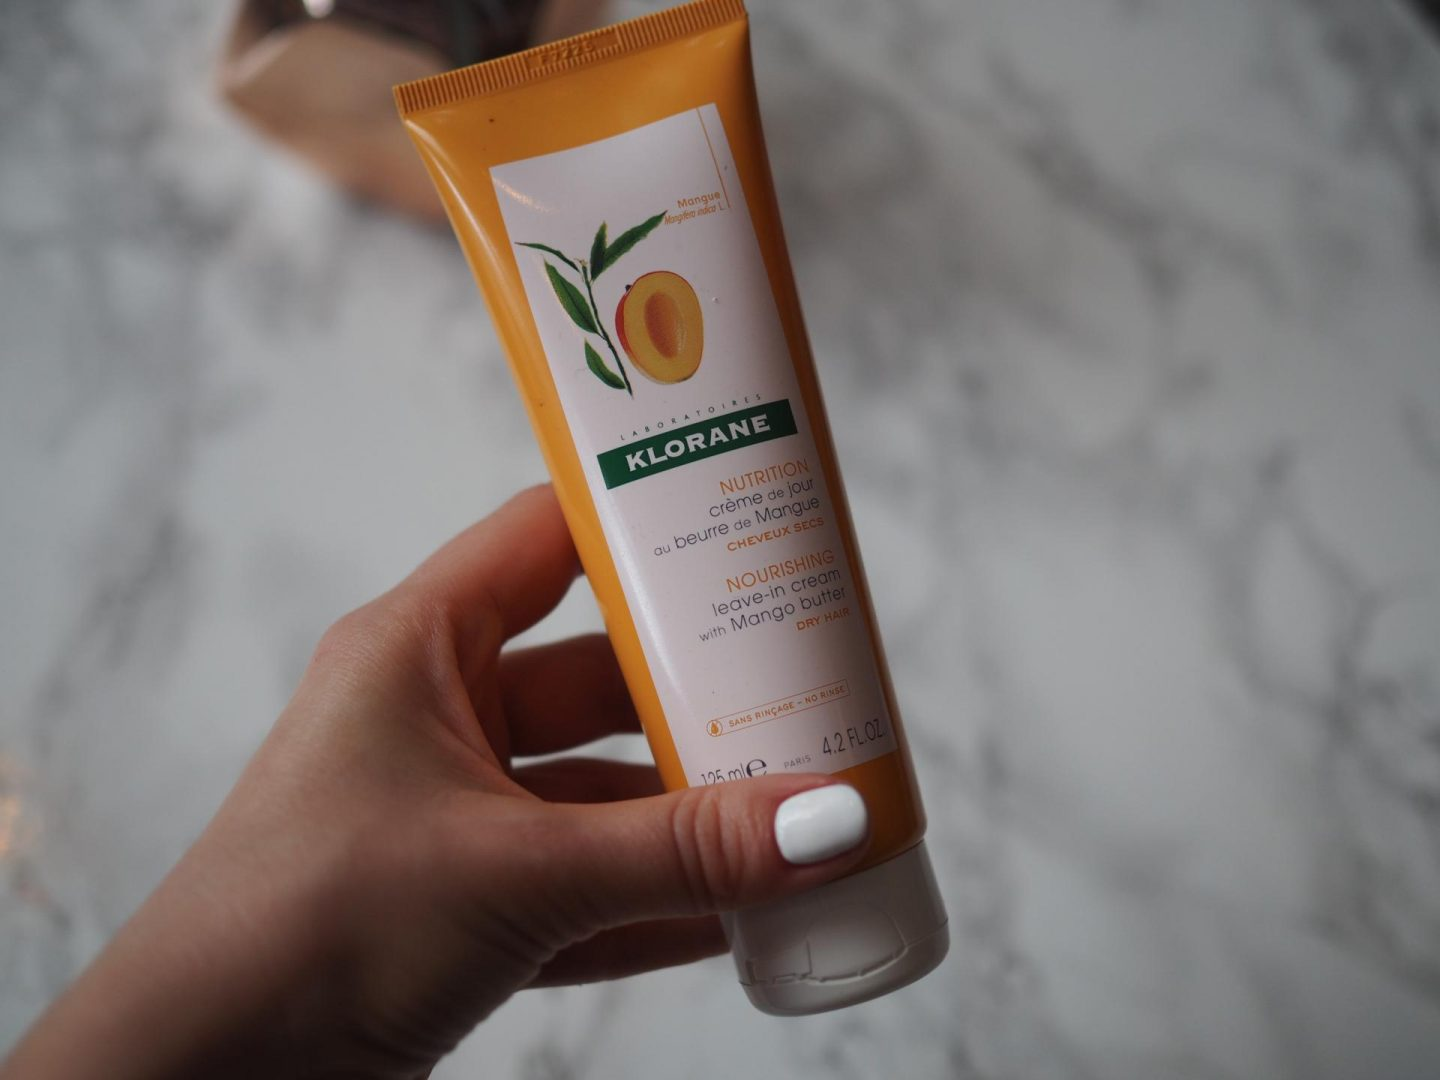 Klorane Nourishing Leave-In Cream with Mango Butter